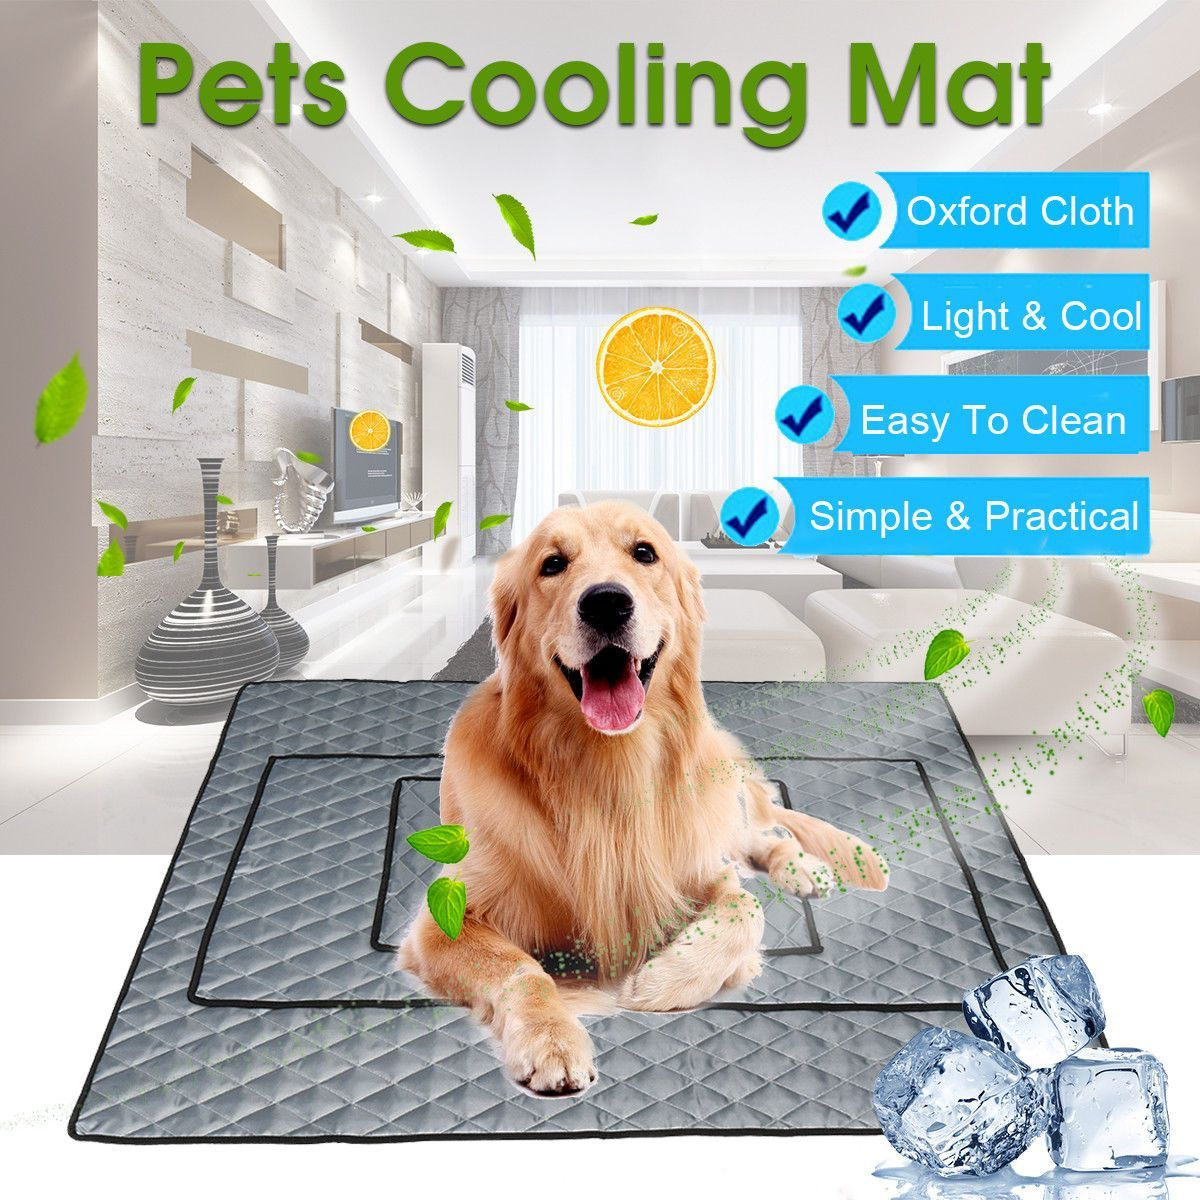 Letnie Sobaka Ohlazhdeniya Mat Pet Lda Ploshadku Teddi Matras Kovrik Kot Podushka Leto Keep Cool Krovat Gel Pet Ohlazhdeniya Mat Dlya Sobak Pet Cooling Mat Summer Dog Pets